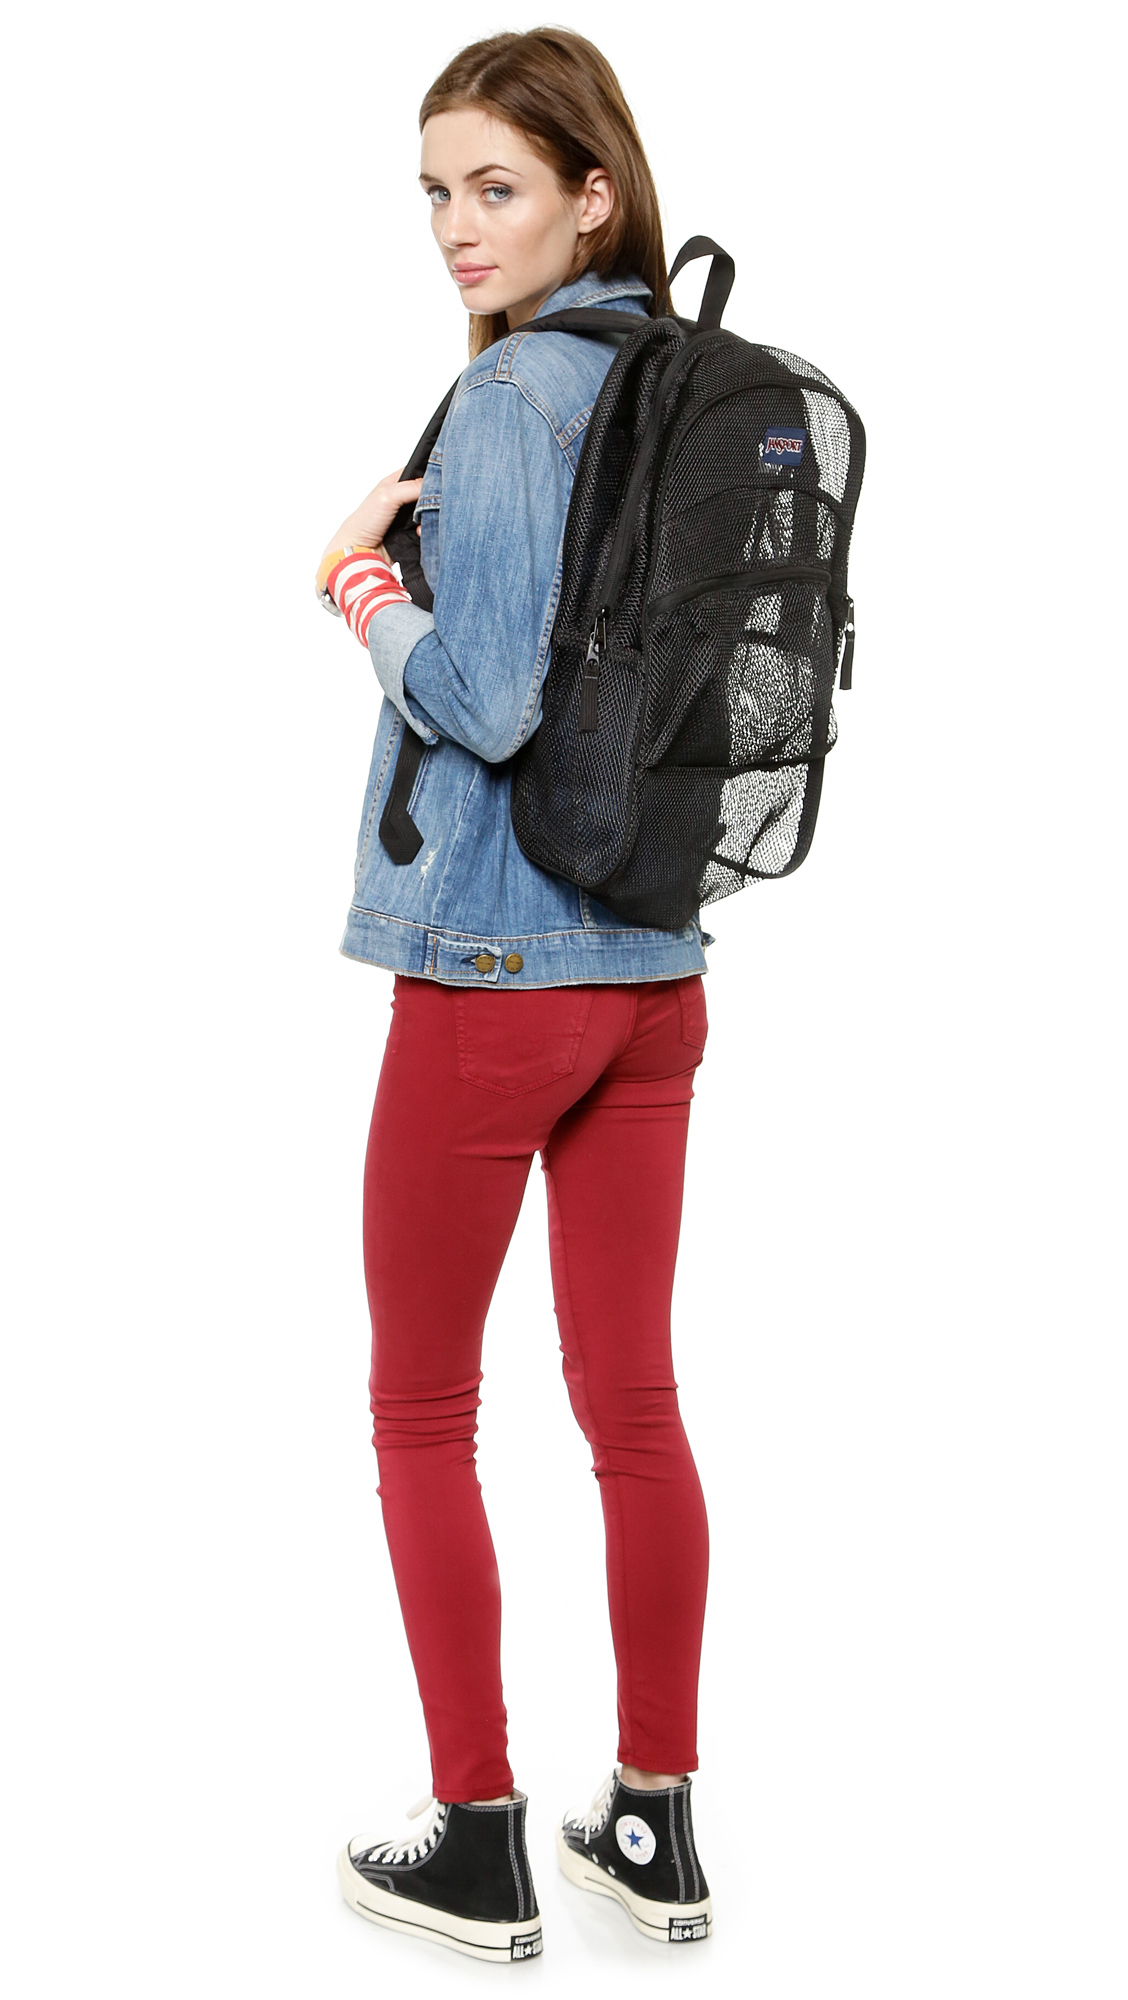 Mesh Jansport Backpacks vXH0sYZq